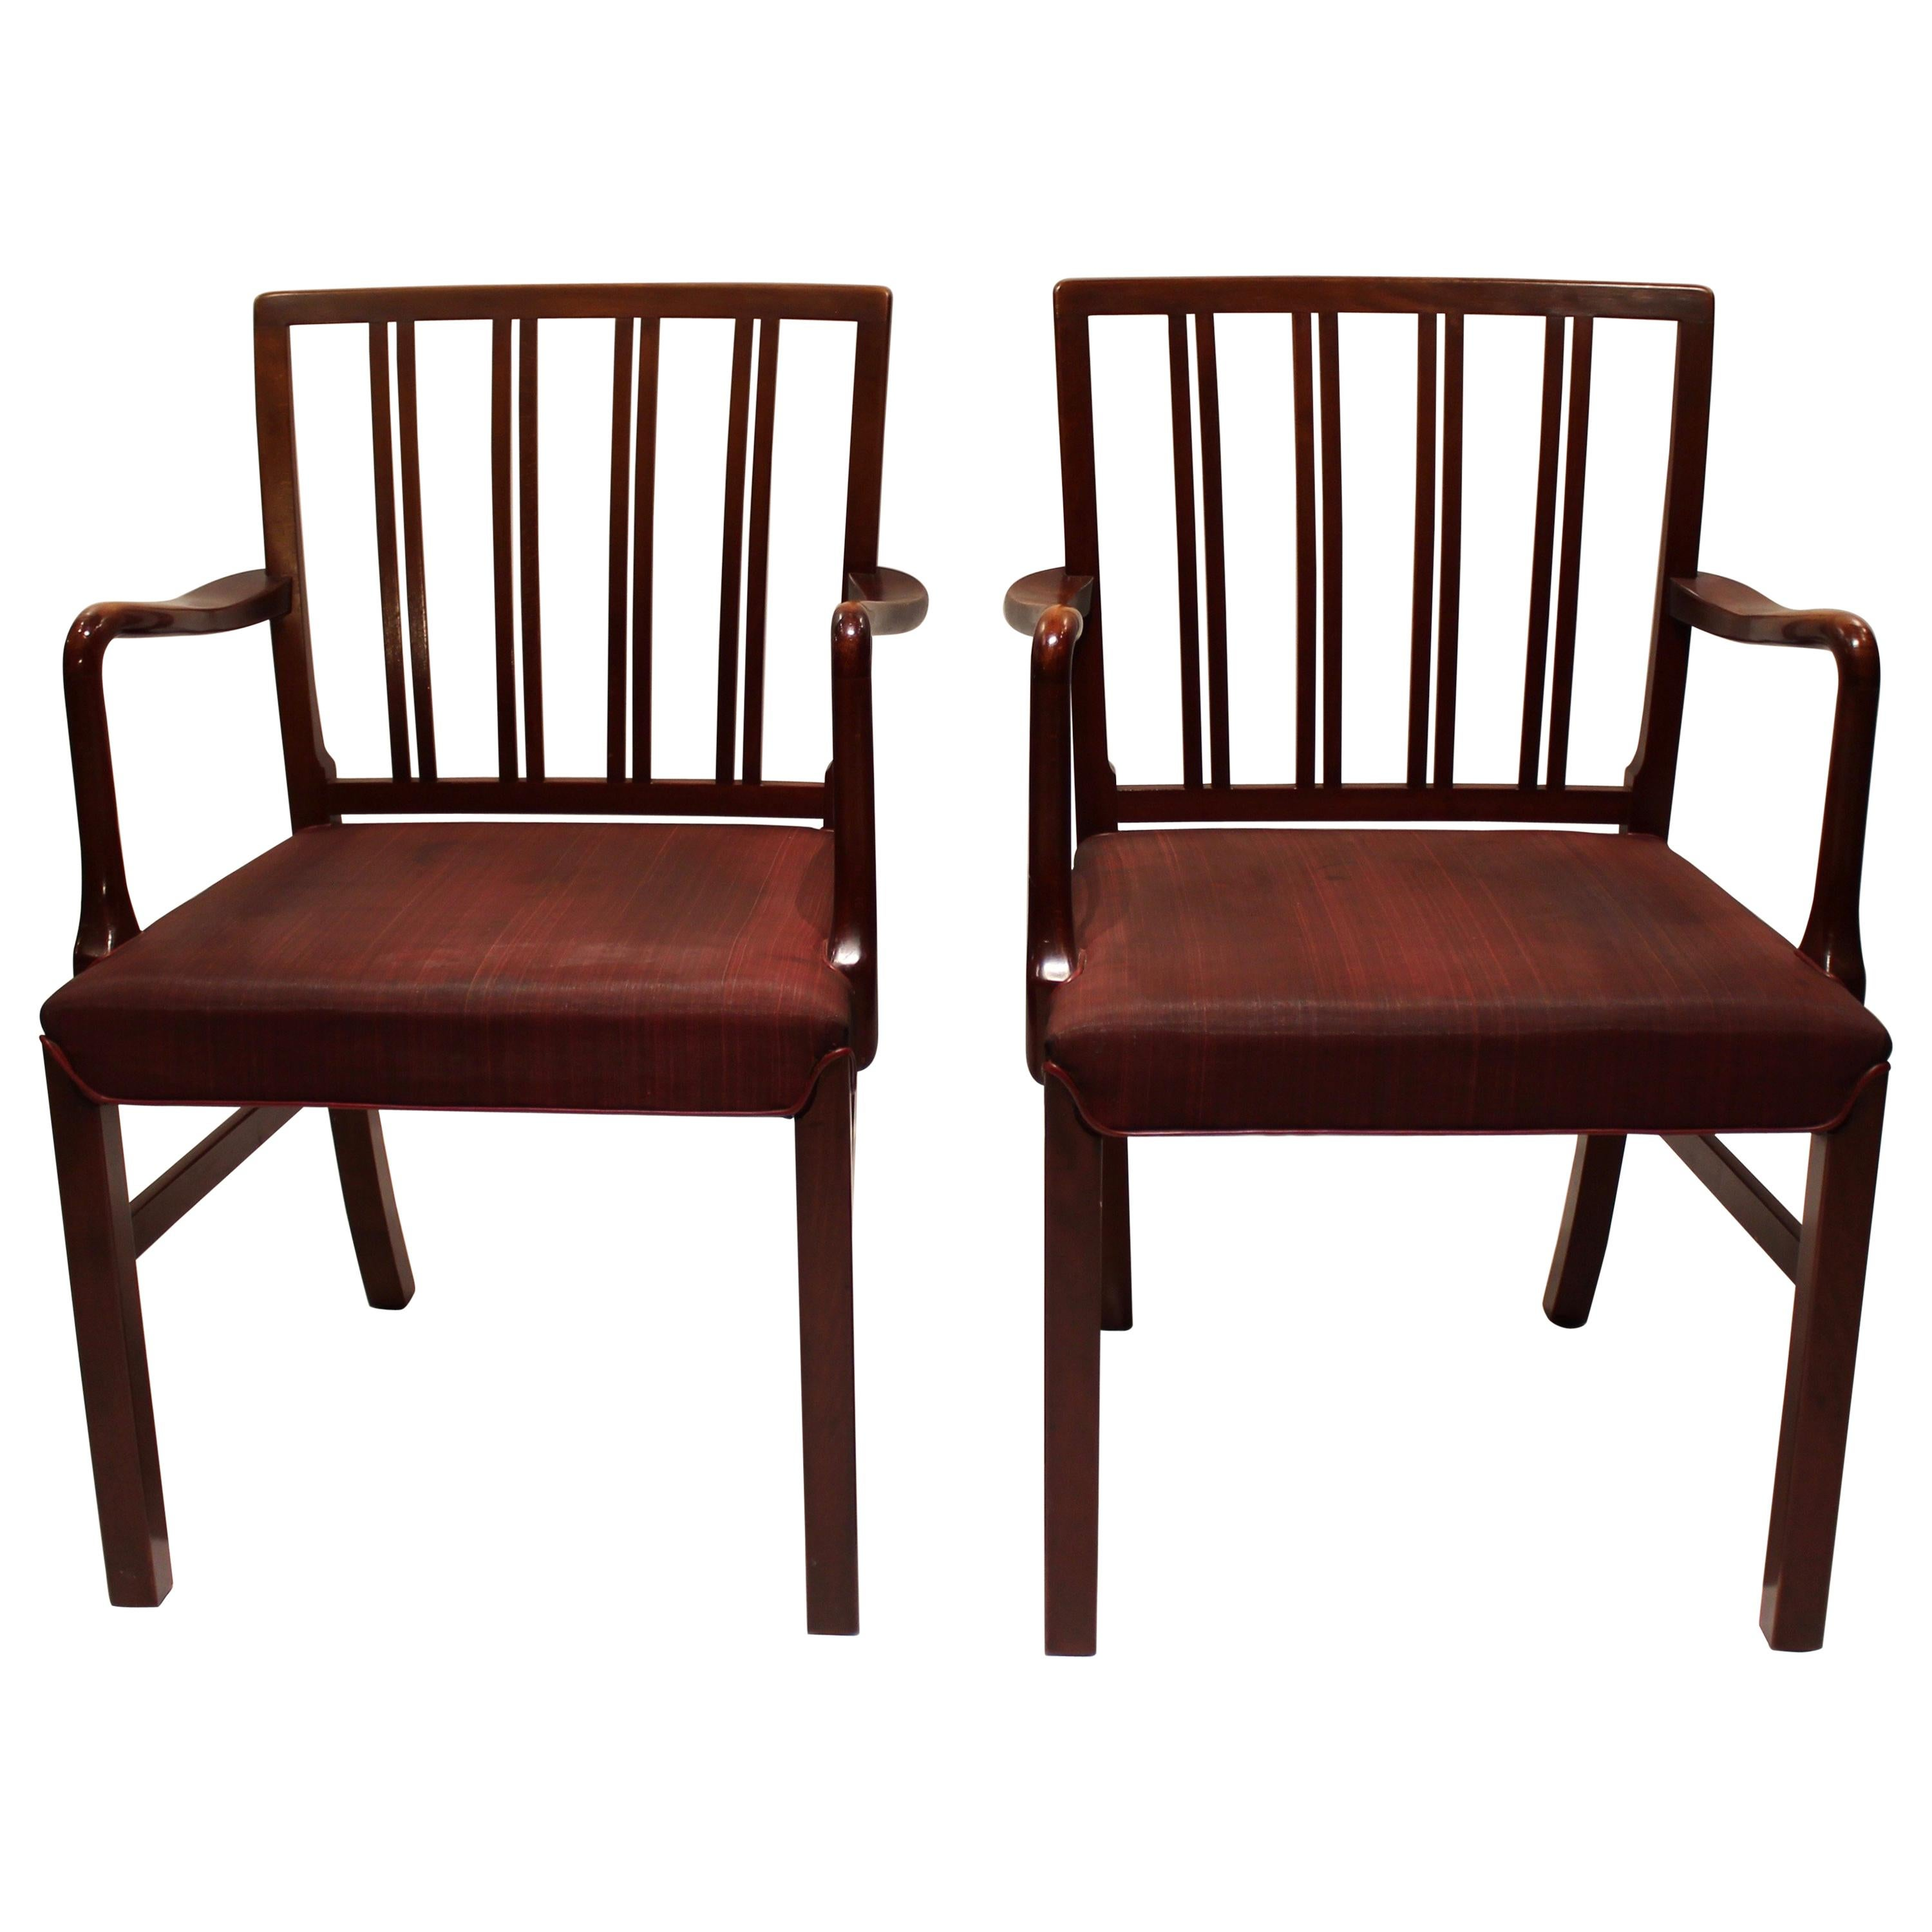 Pair of Armchairs in Mahogany and Red Fabric by Fritz Hansen, 1930s